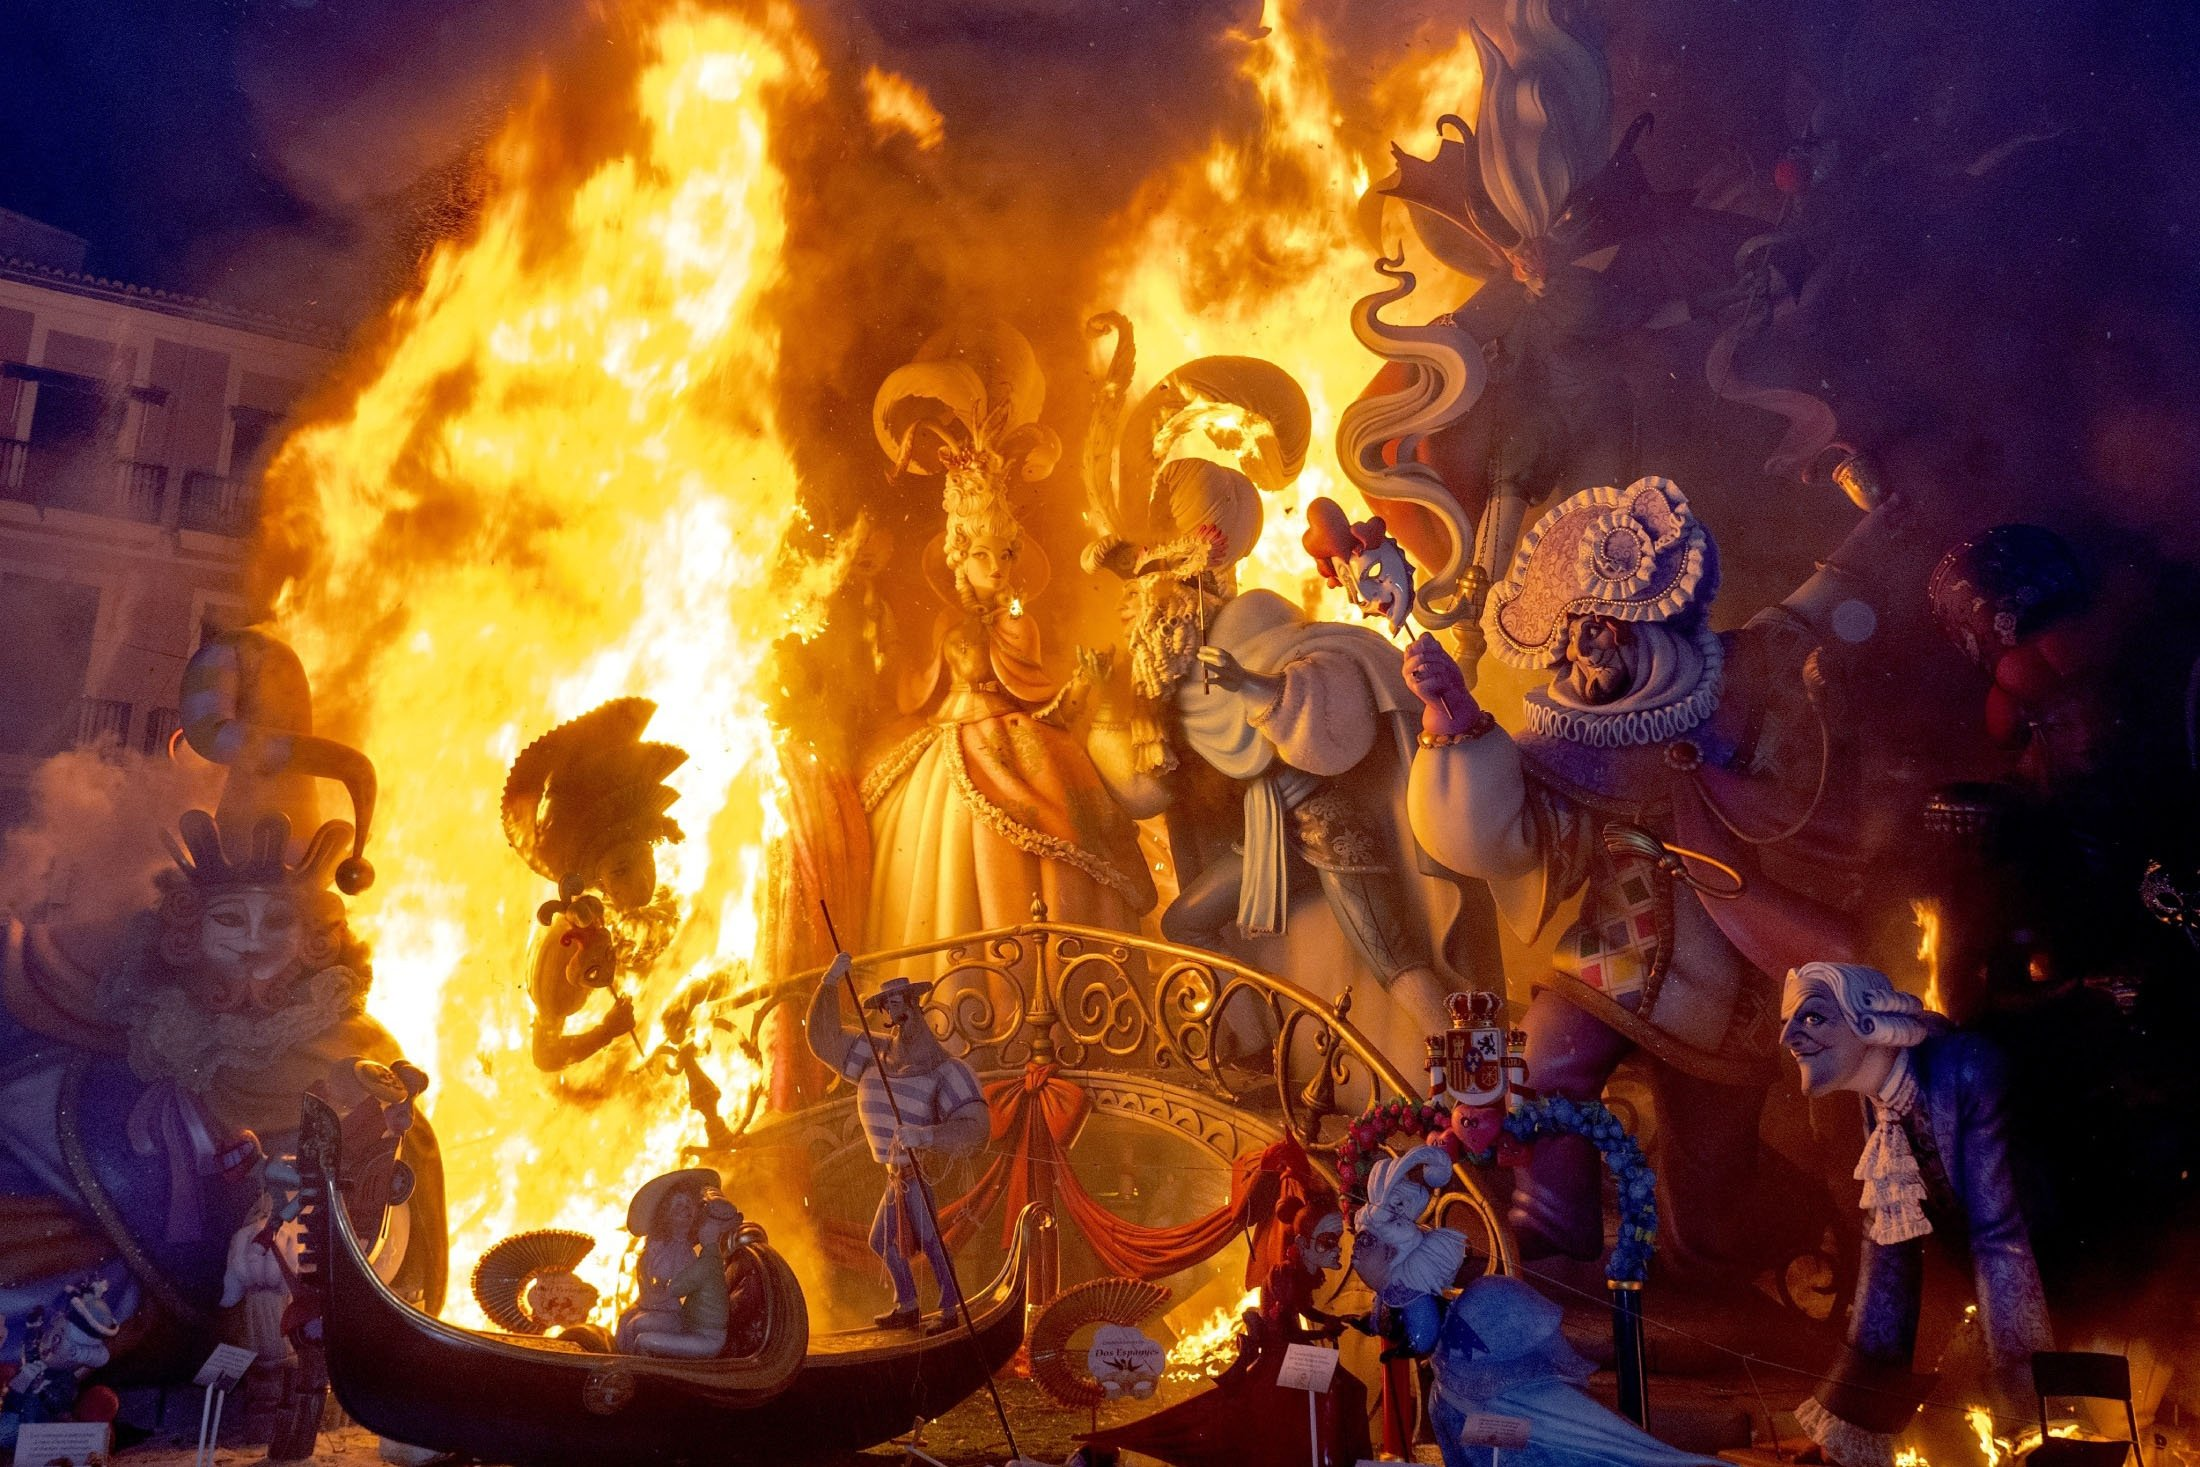 A falla burning during the traditional Fallas festival in Valencia, Spain, Sept. 5, 2021. (AFP Photo)